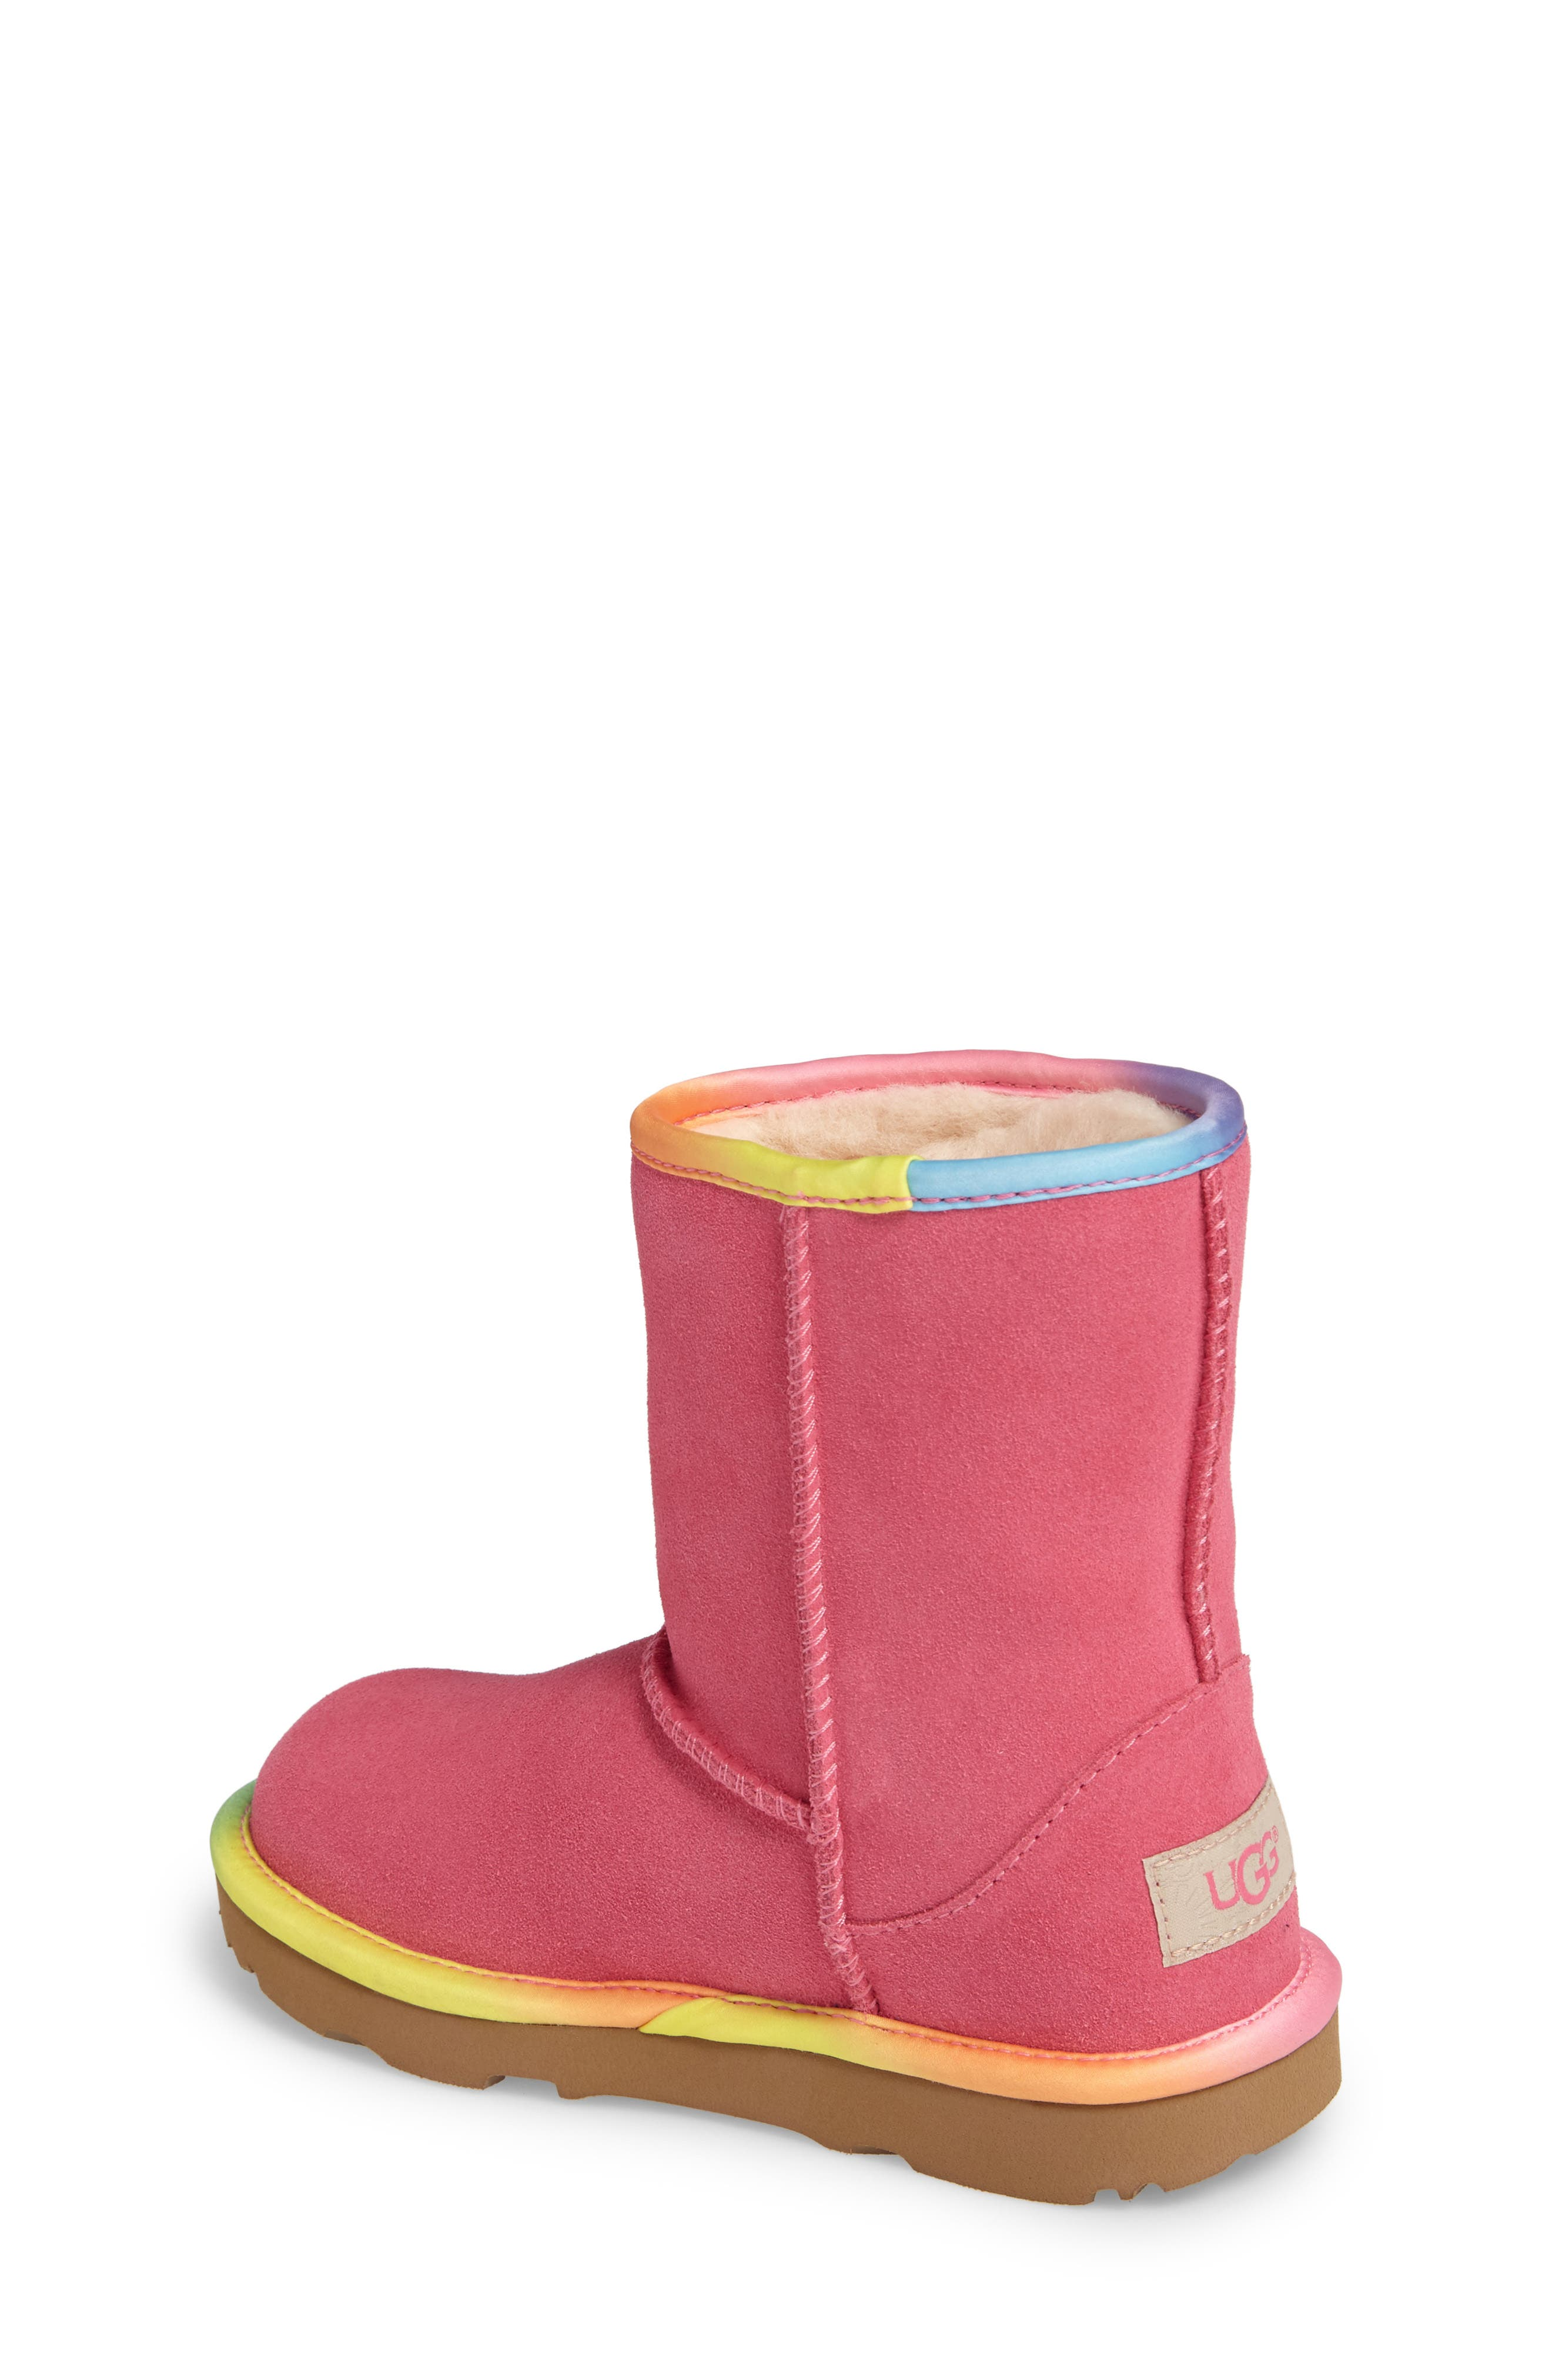 Alternate Image 2  - UGG® Classic Short II Water-Resistant Genuine Shearling Rainbow Boot (Walker, Toddler, Little Kid & Big Kid)